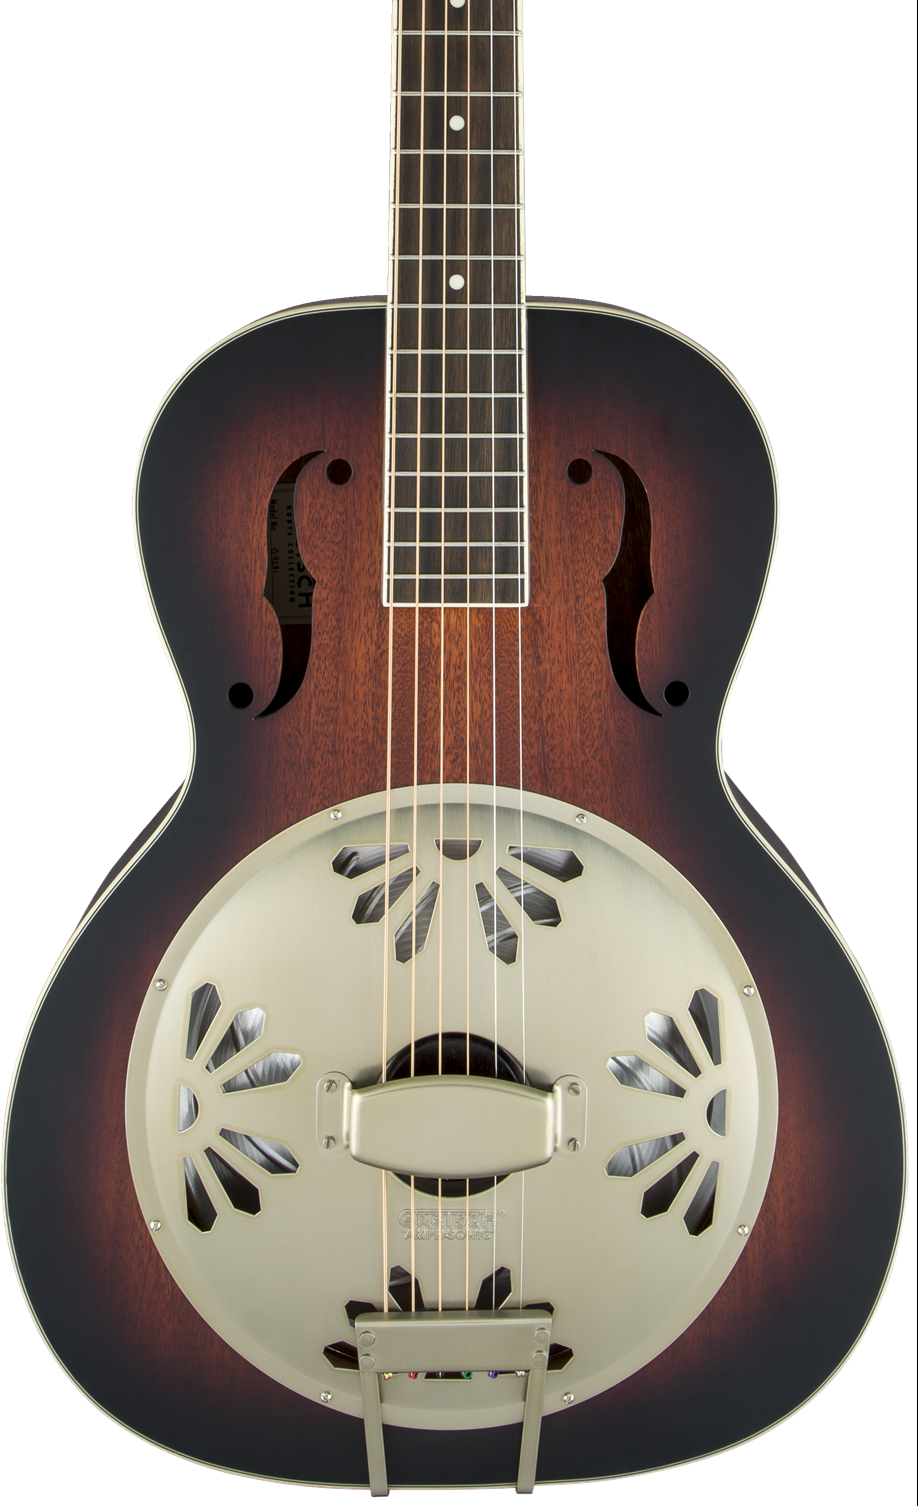 Gretsch G9241 Alligator Biscuit Round-Neck Resonator